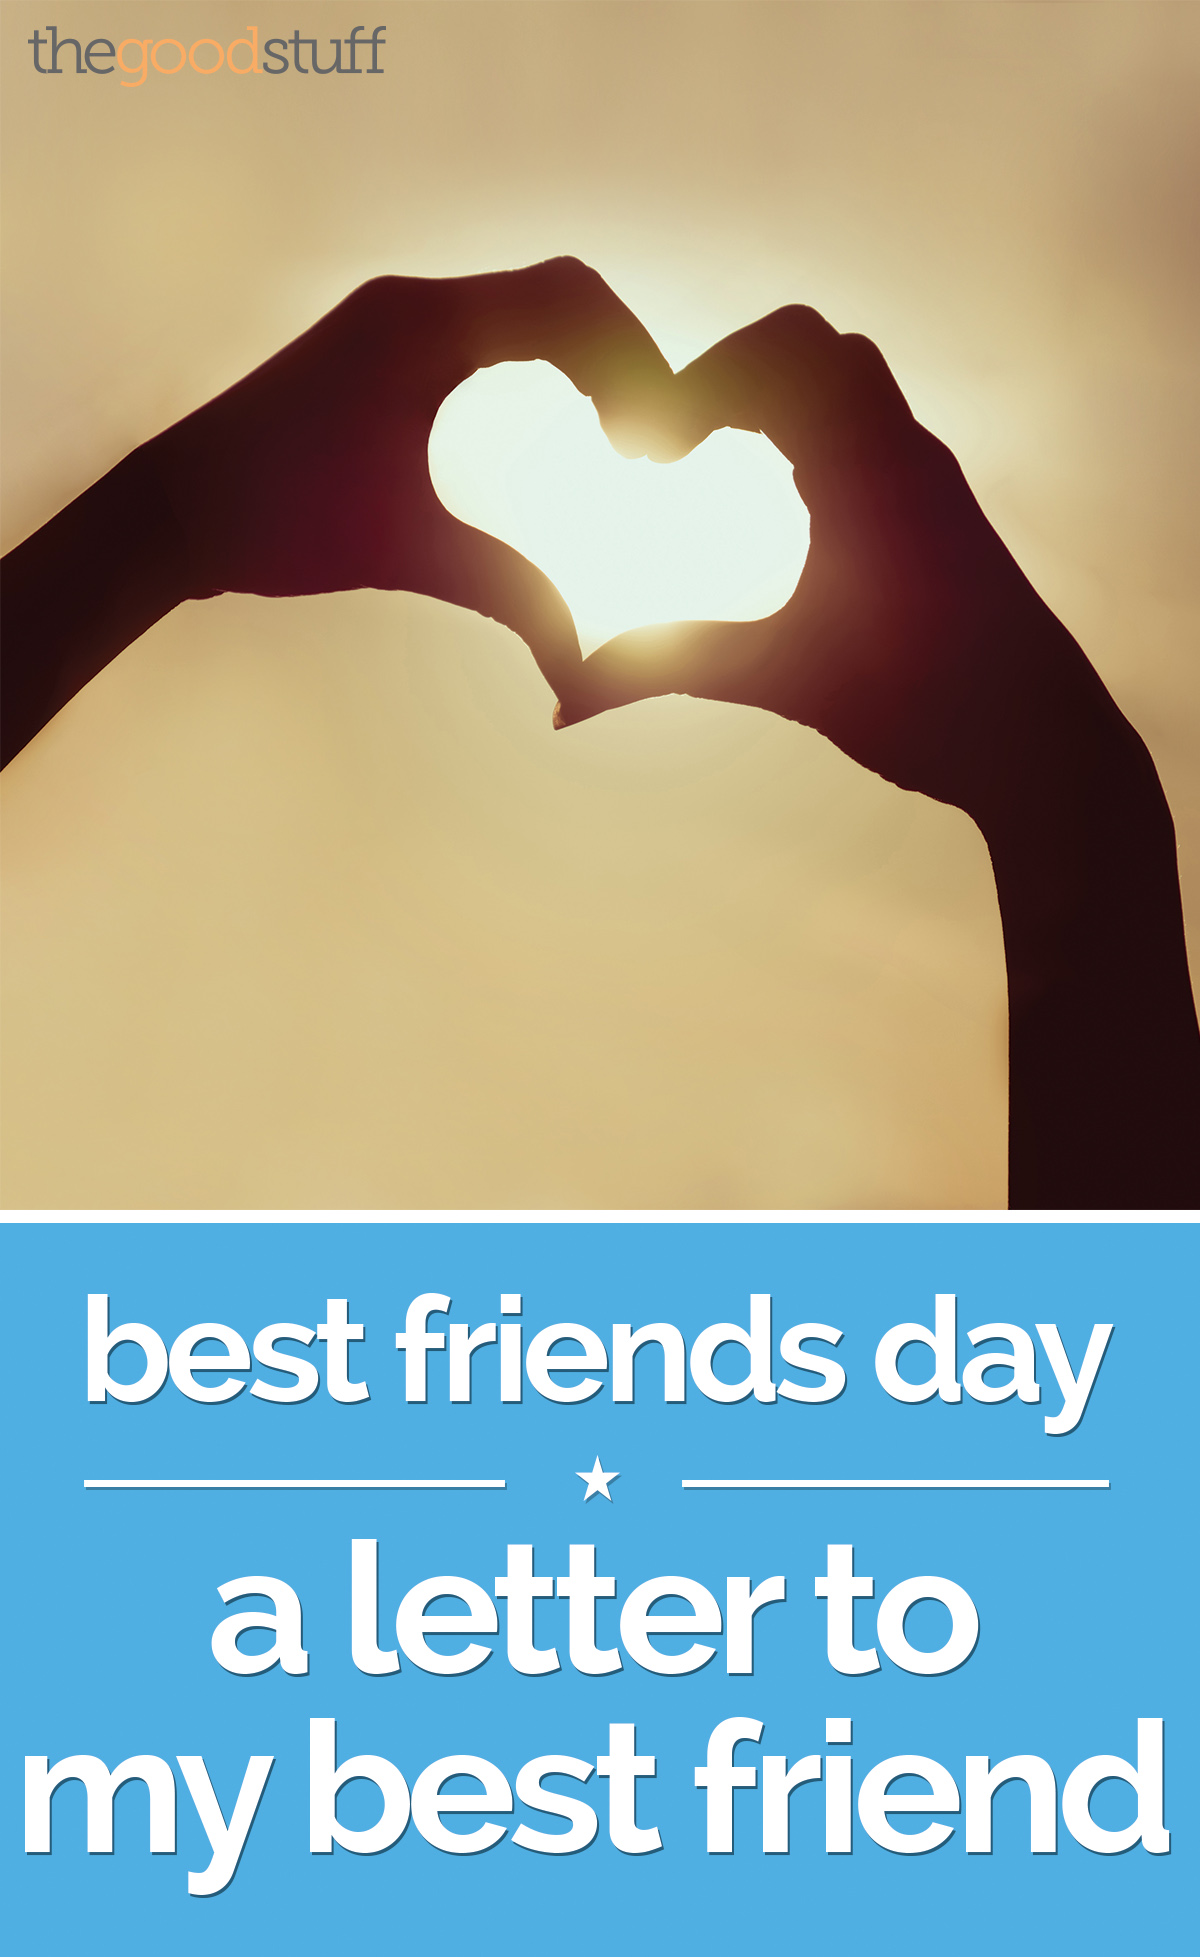 Best Friends Day: A Letter to My Best Friend - thegoodstuff